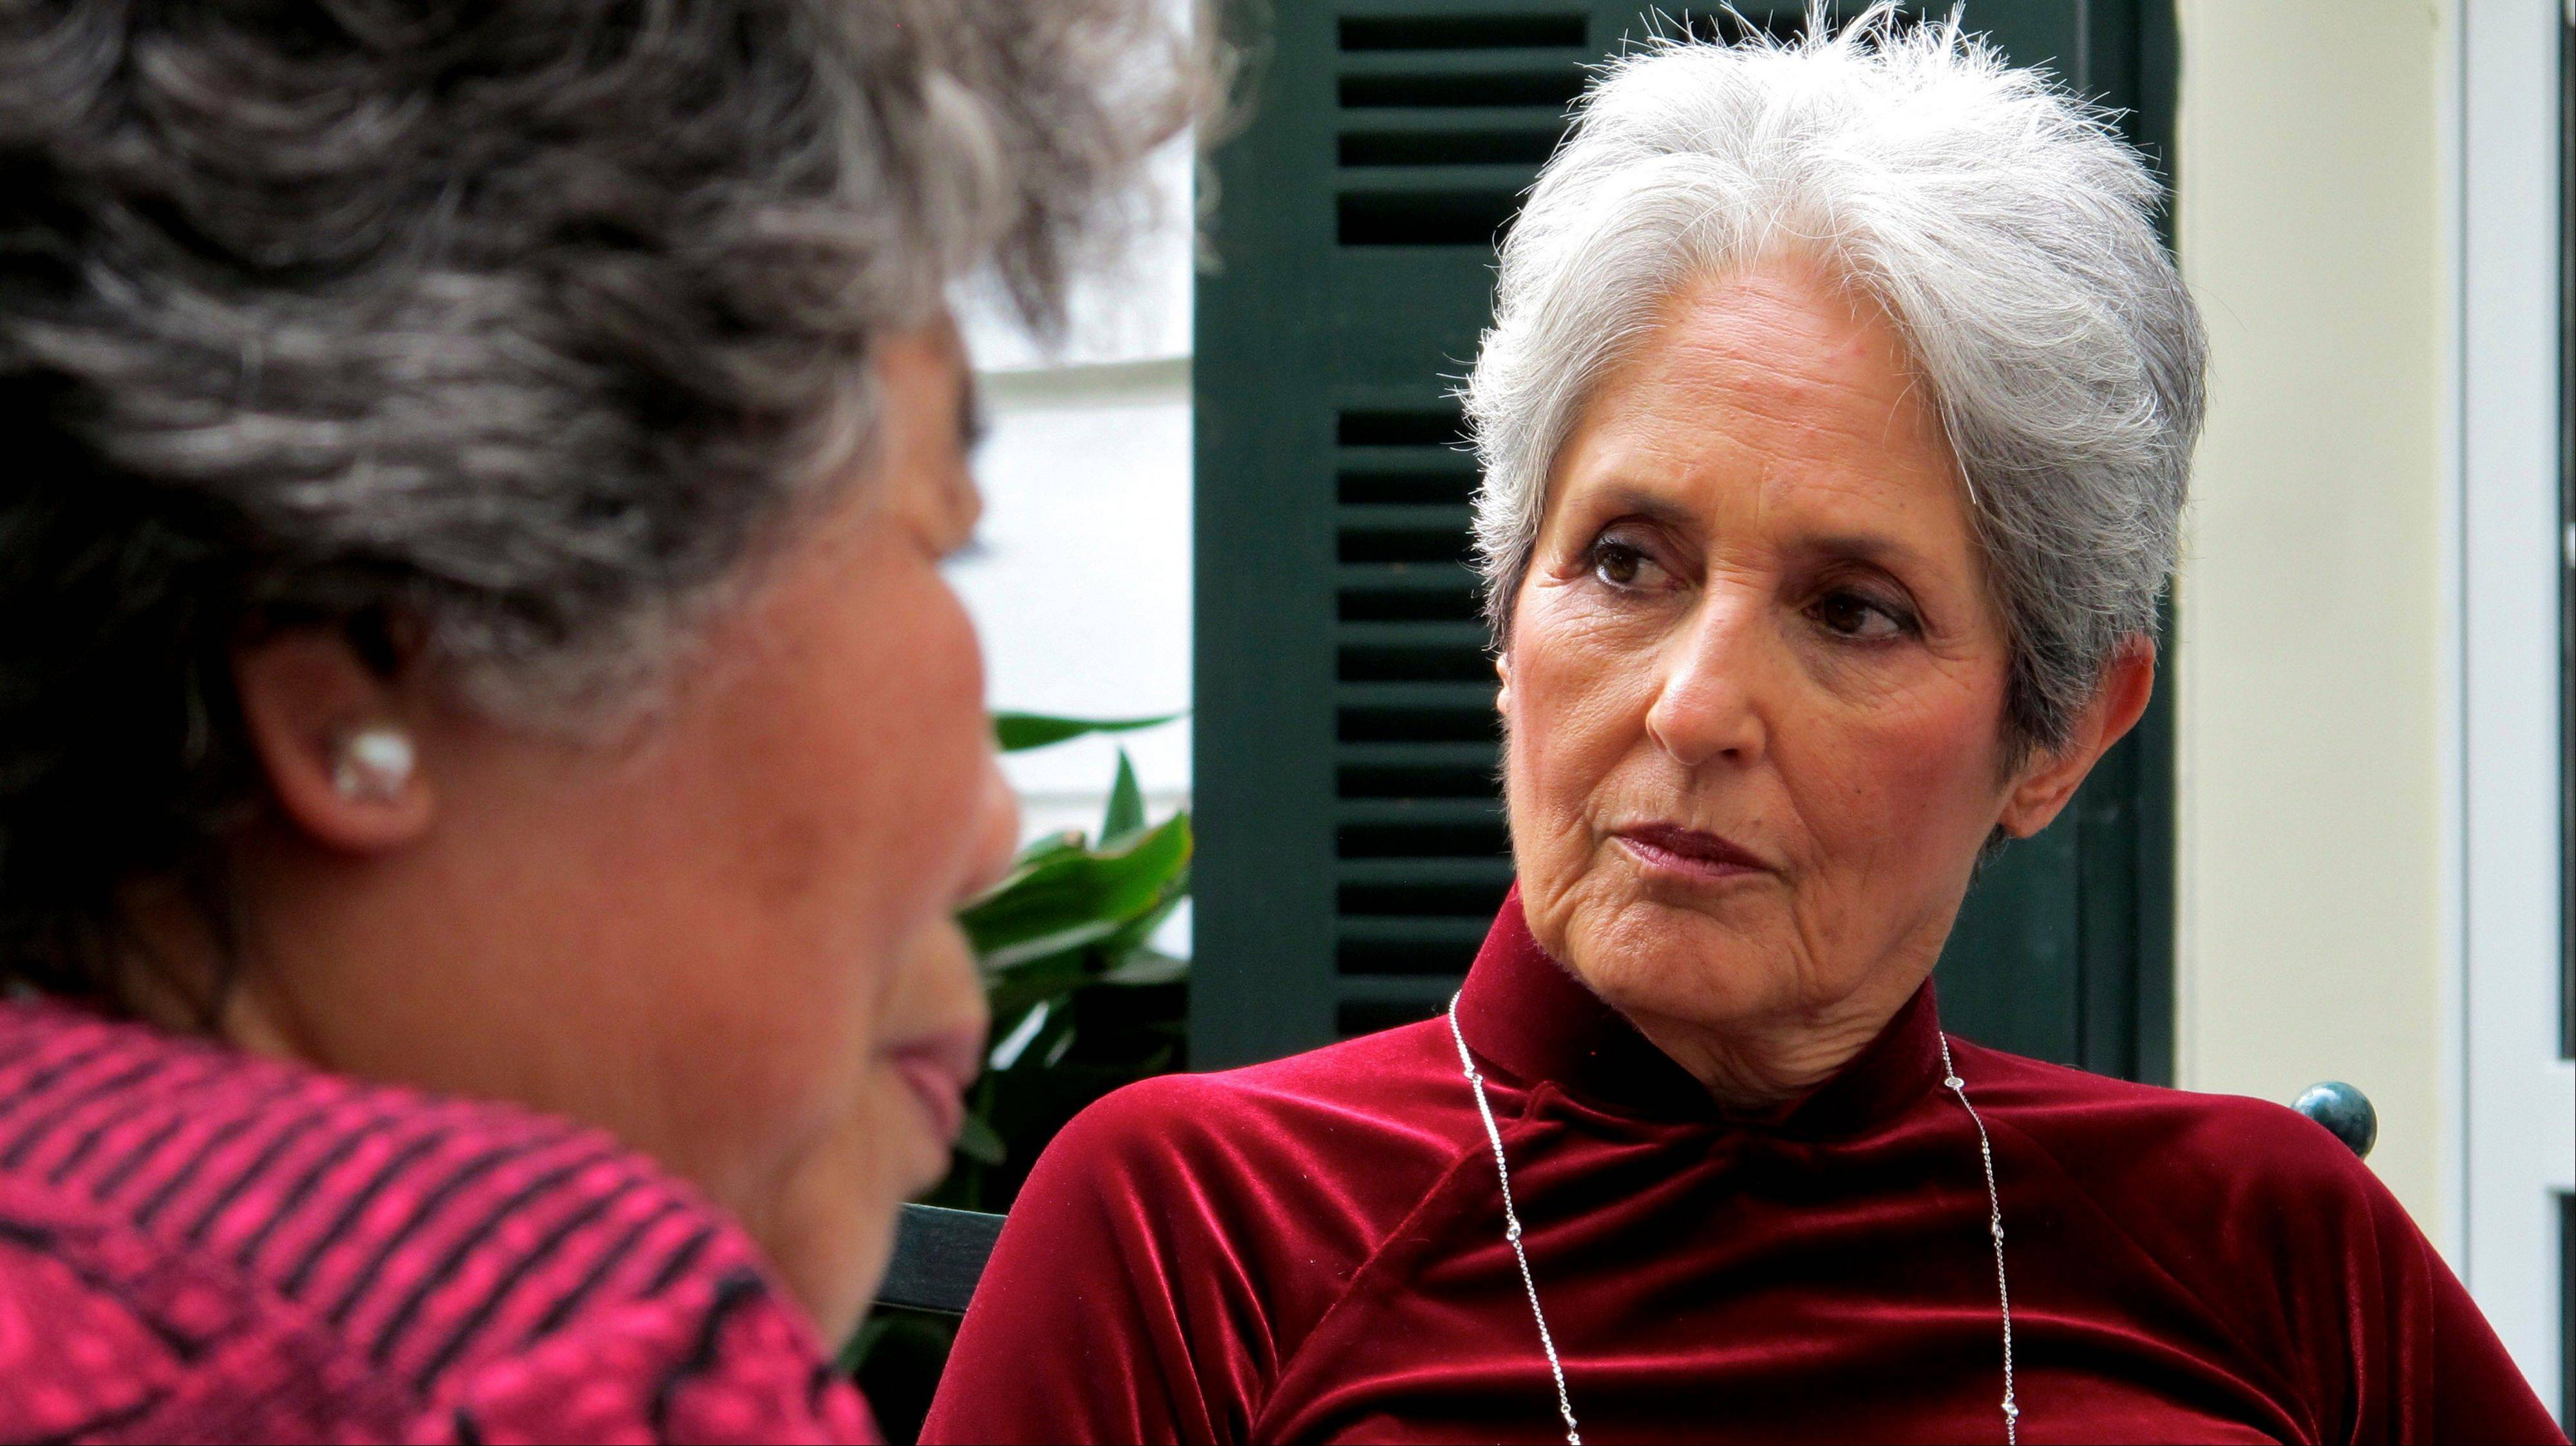 Joan Baez listens to former staff of the Metropole Hanoi discuss their memories of working at the hotel in 1972 in Hanoi, Vietnam. The folk singer and social activist visited Vietnam recently for the first time since she came to the country in December 1972 as part of an American peace delegation.